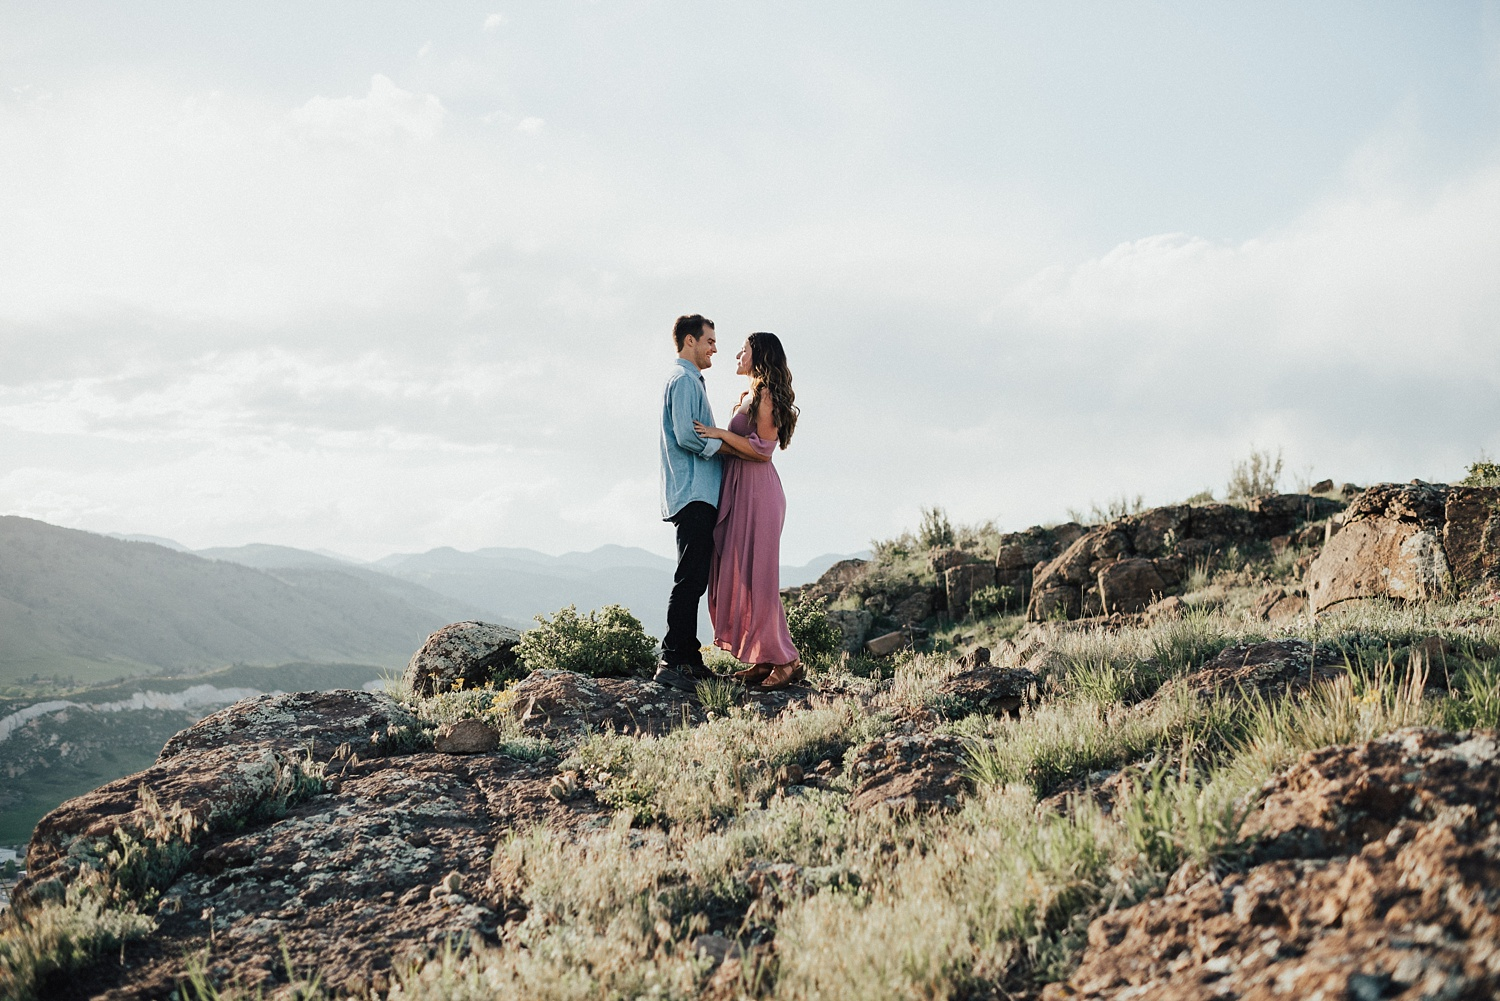 Nate_shepard_photography_colorado_denver_wedding_0419.jpg